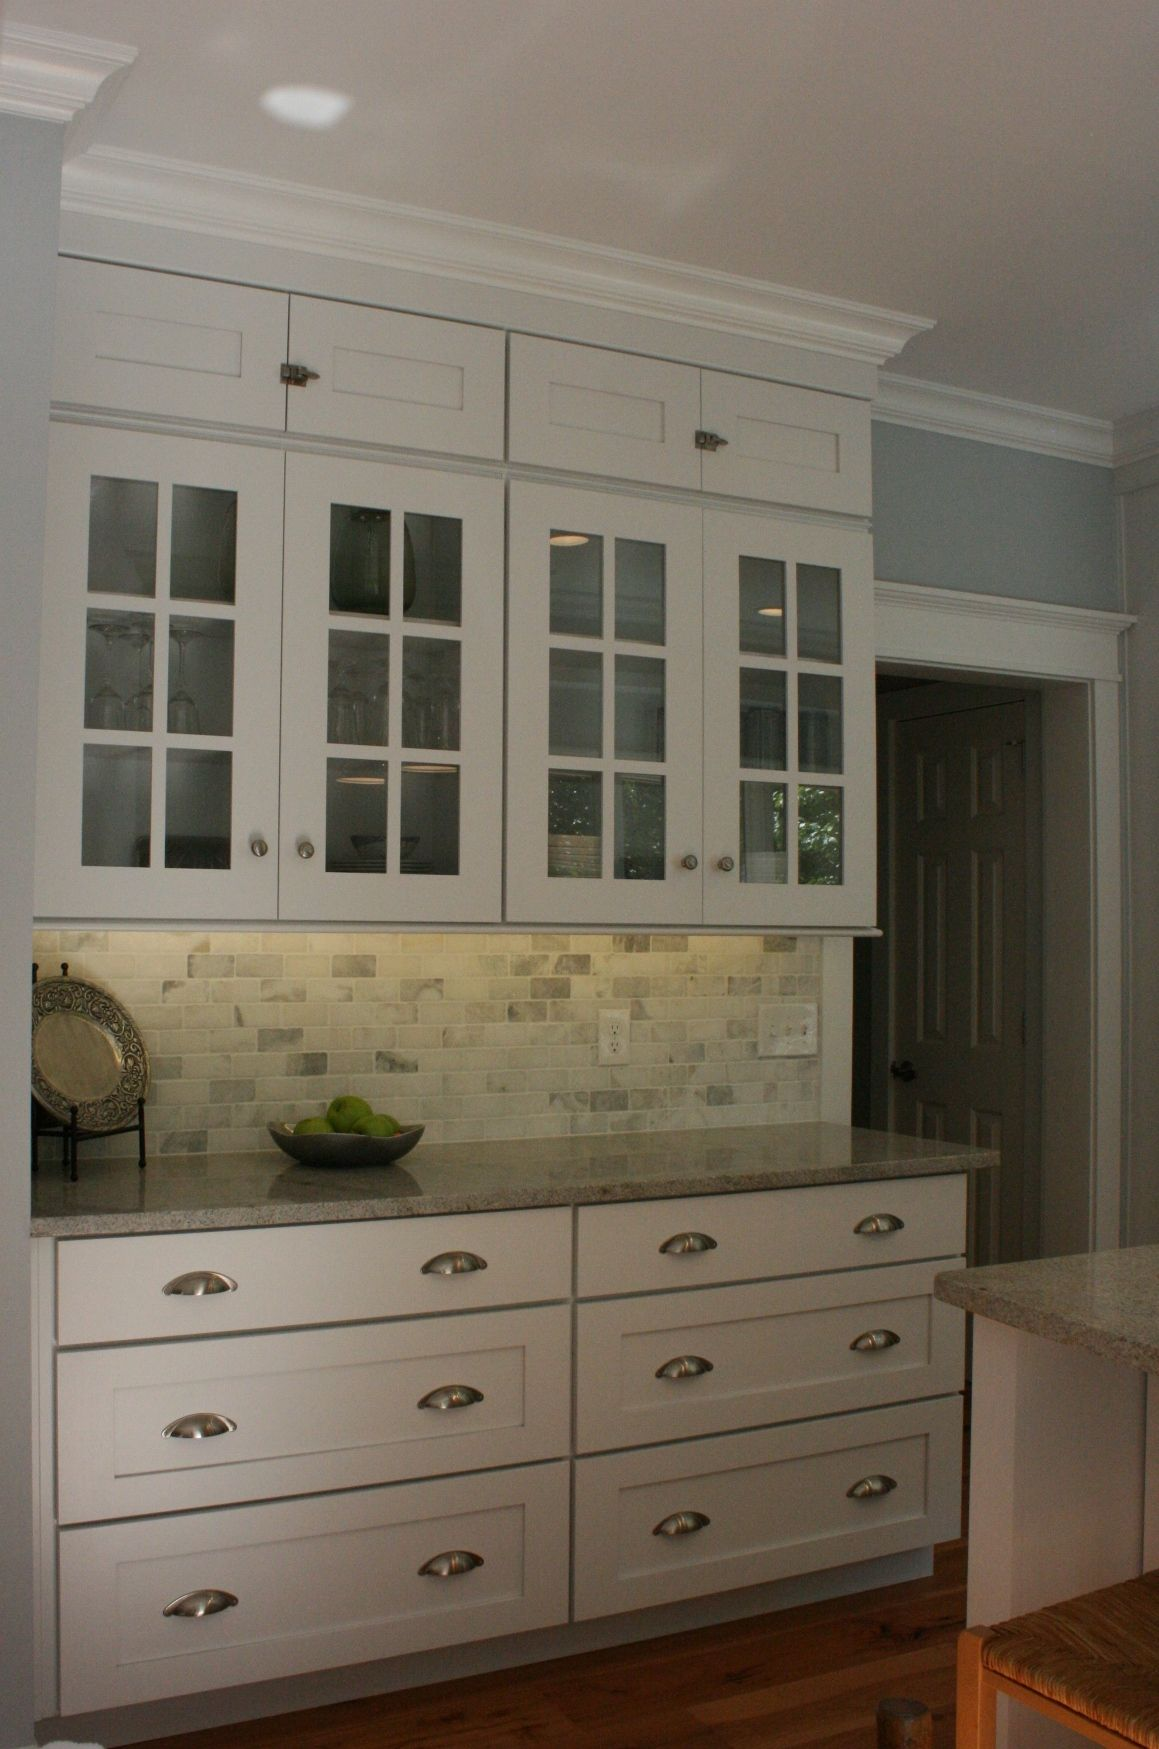 Koch Classic Cabinets In August Door Style Painted White Classic Cabinets Kitchen Cabinets Kitchen